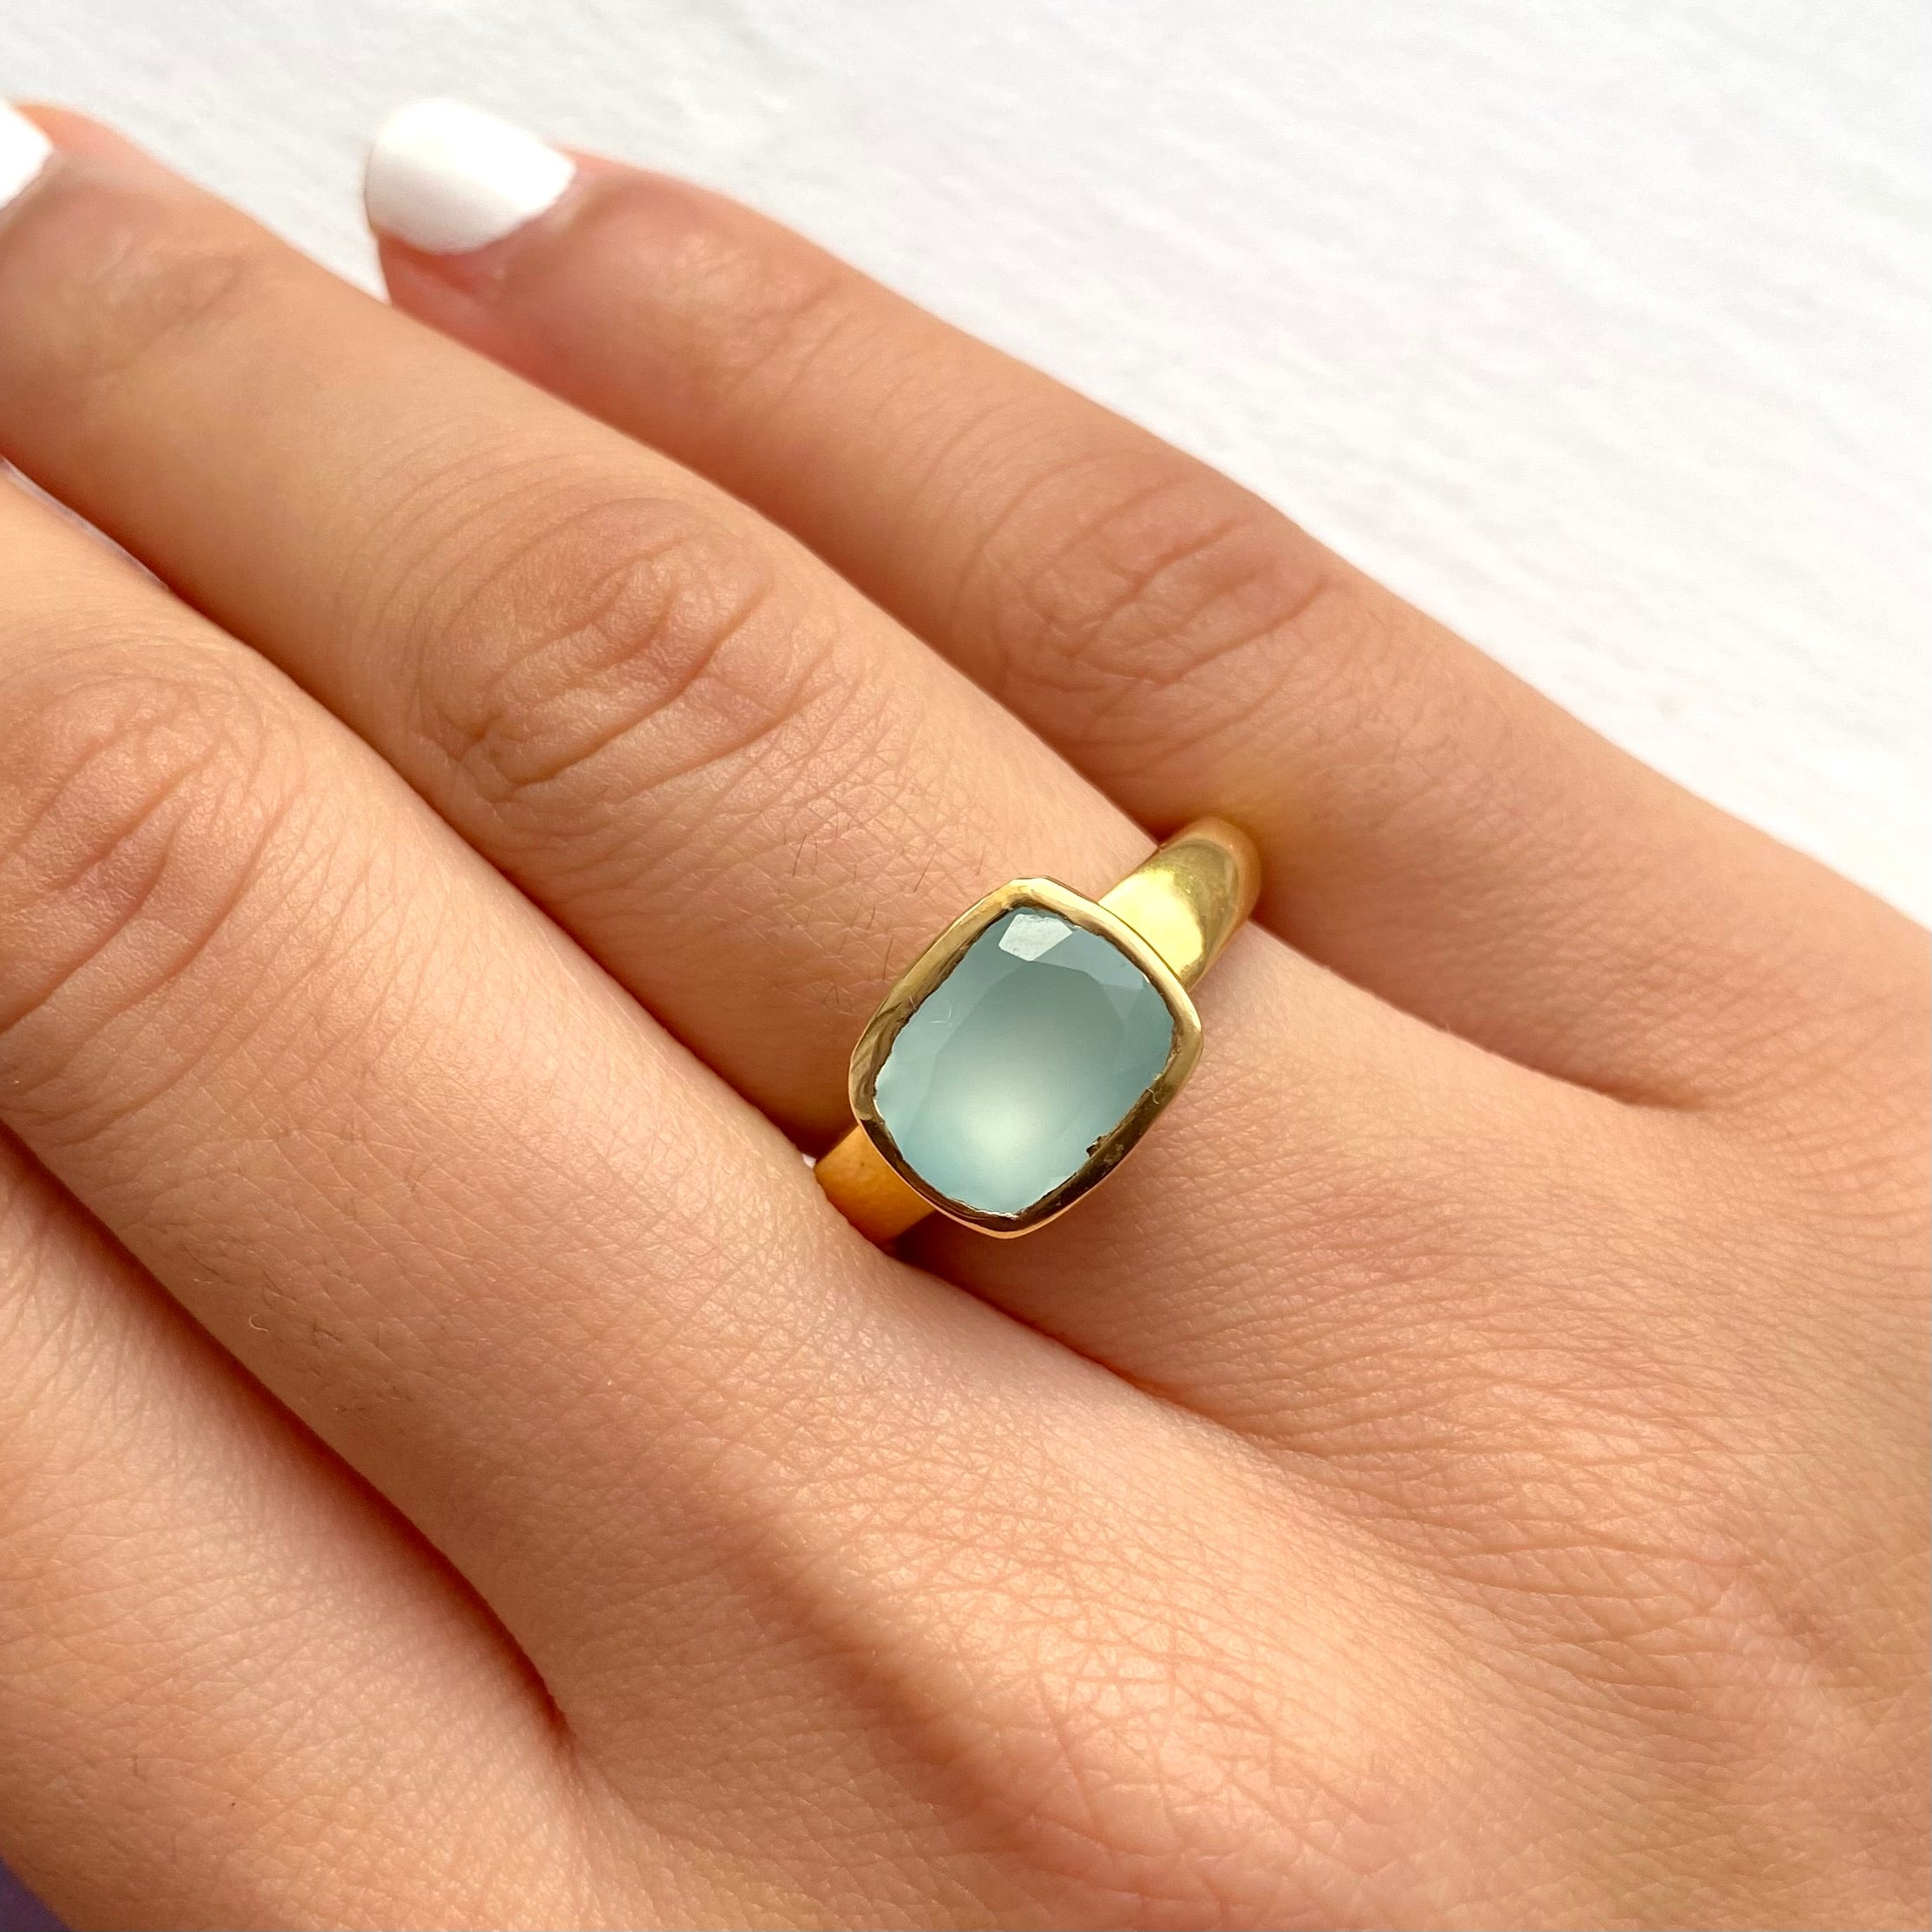 Faceted Rectangular Cut Natural Gemstone Gold Plated Sterling Silver Ring - Aqua Chalcedony